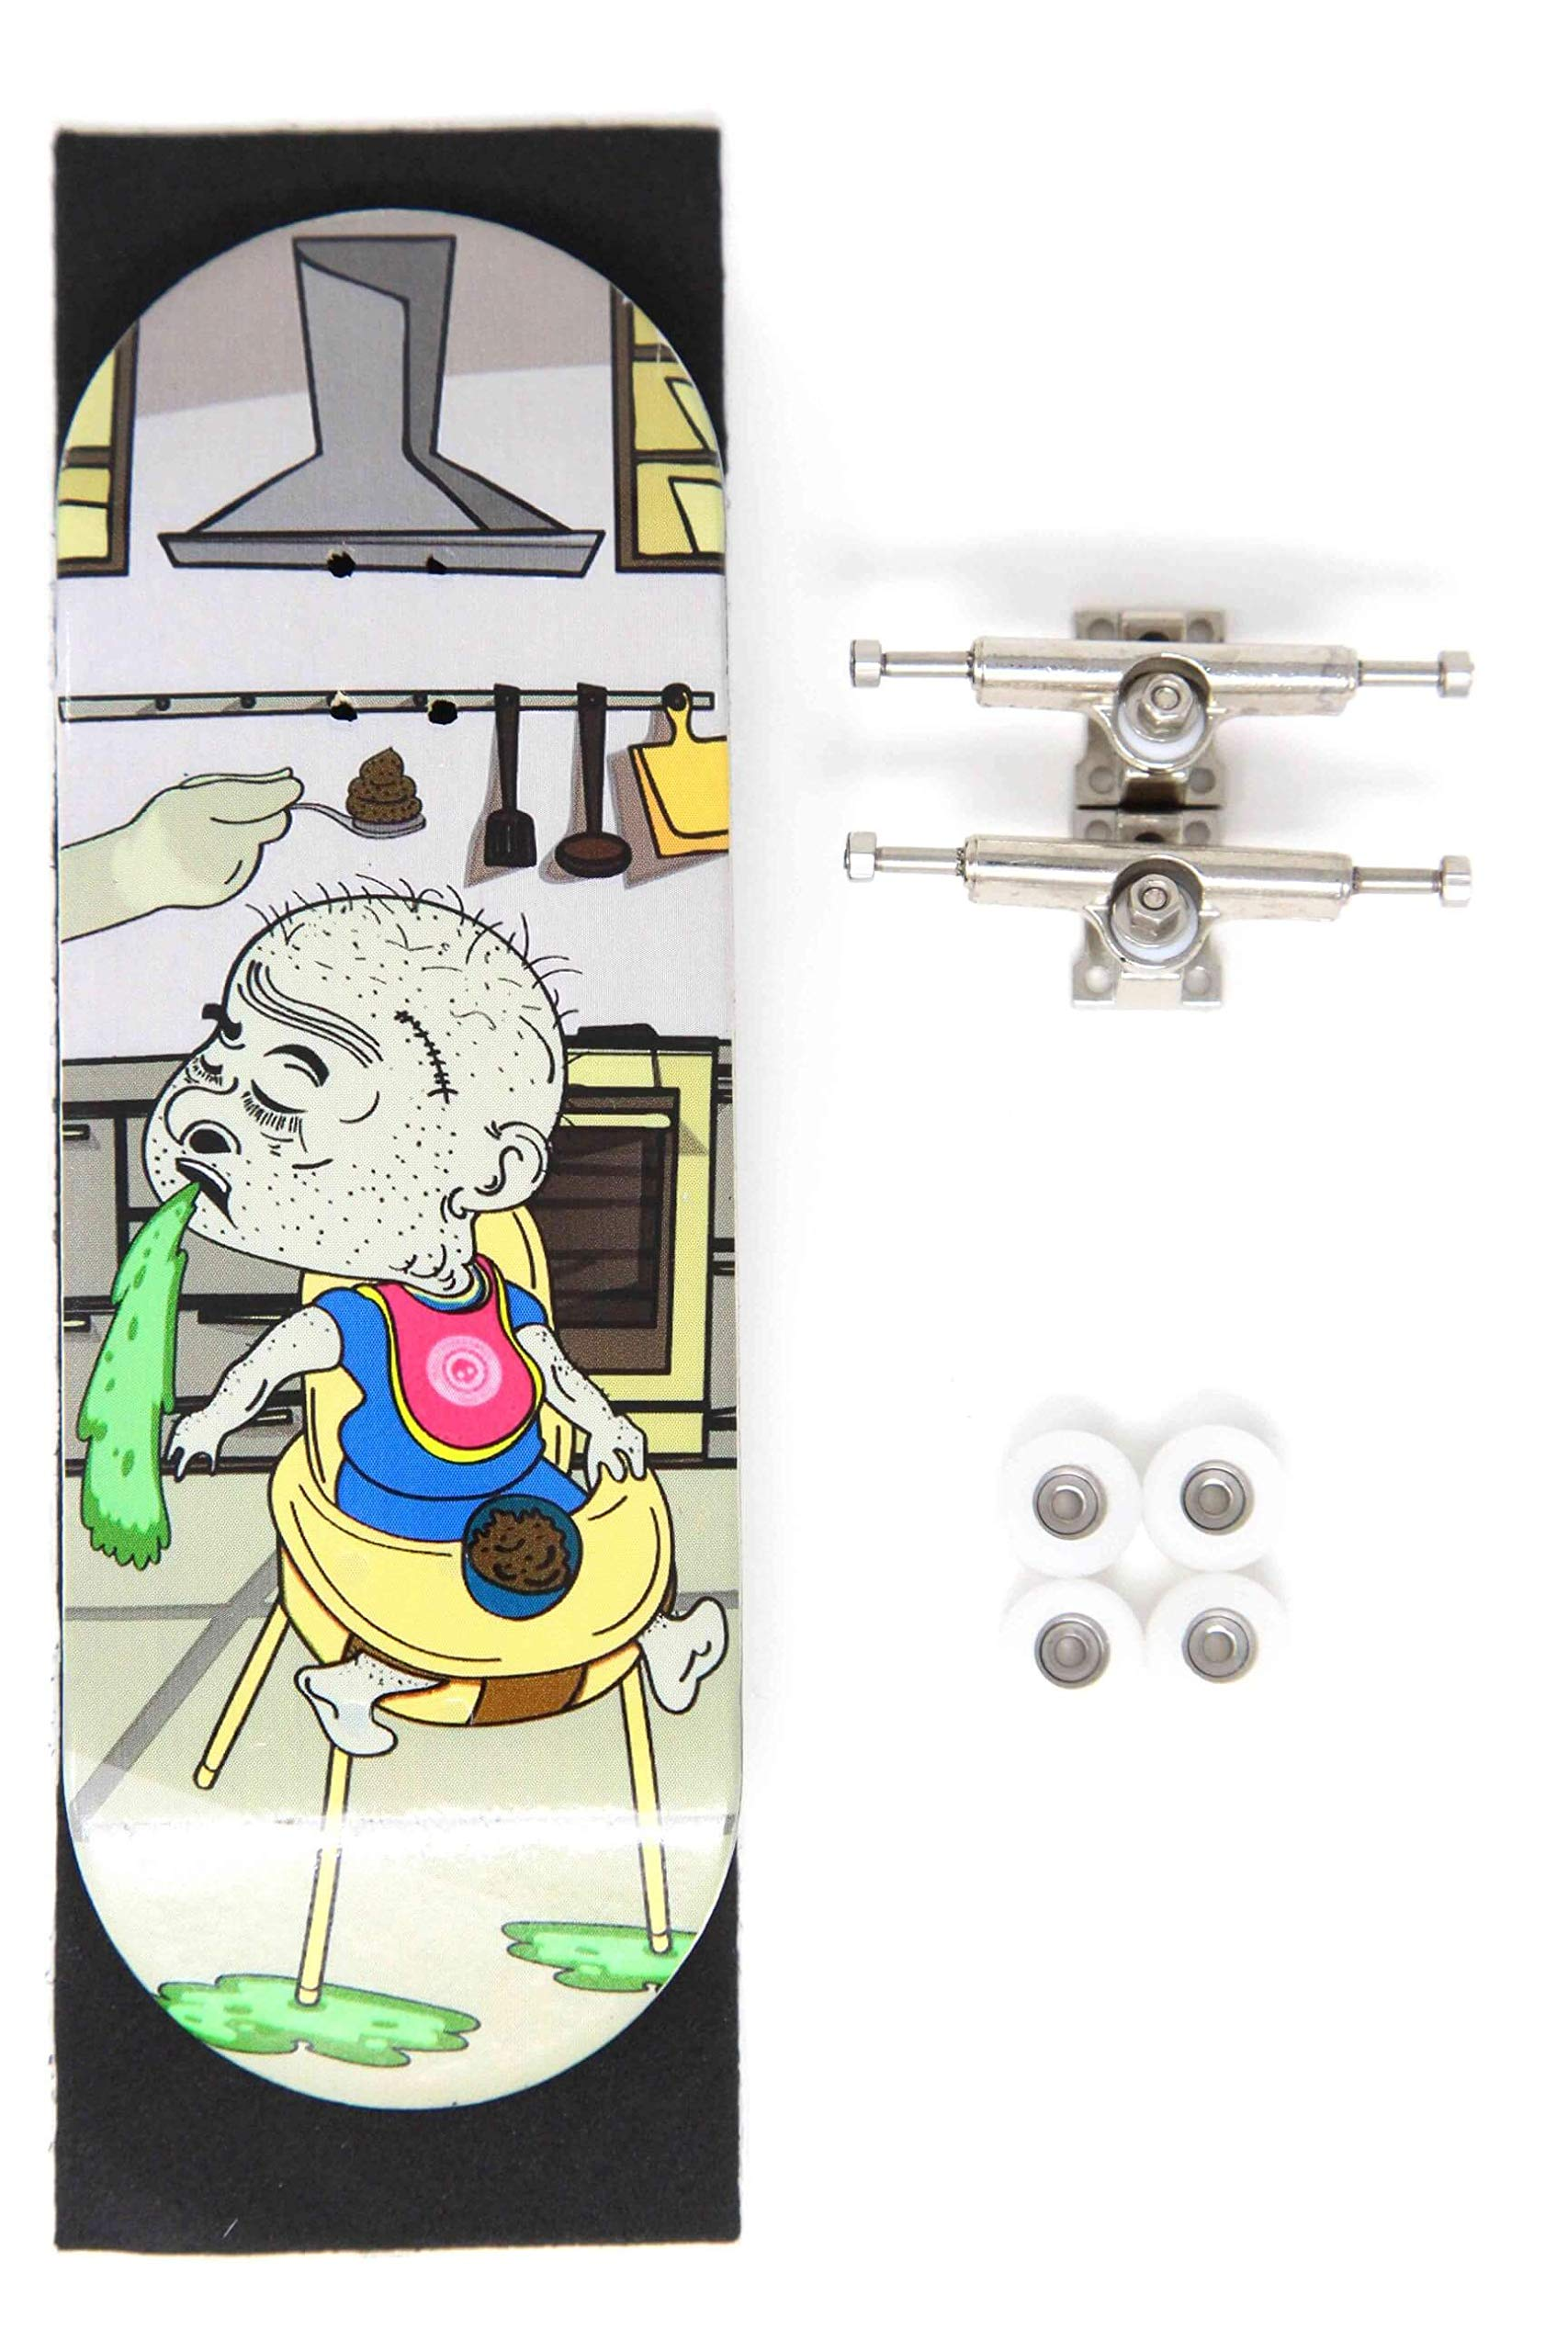 Skull Fingerboards Feed Me 34mm Complete Professional Wooden Fingerboard Mini Skateboard 5 PLY with CNC Bearing Wheels